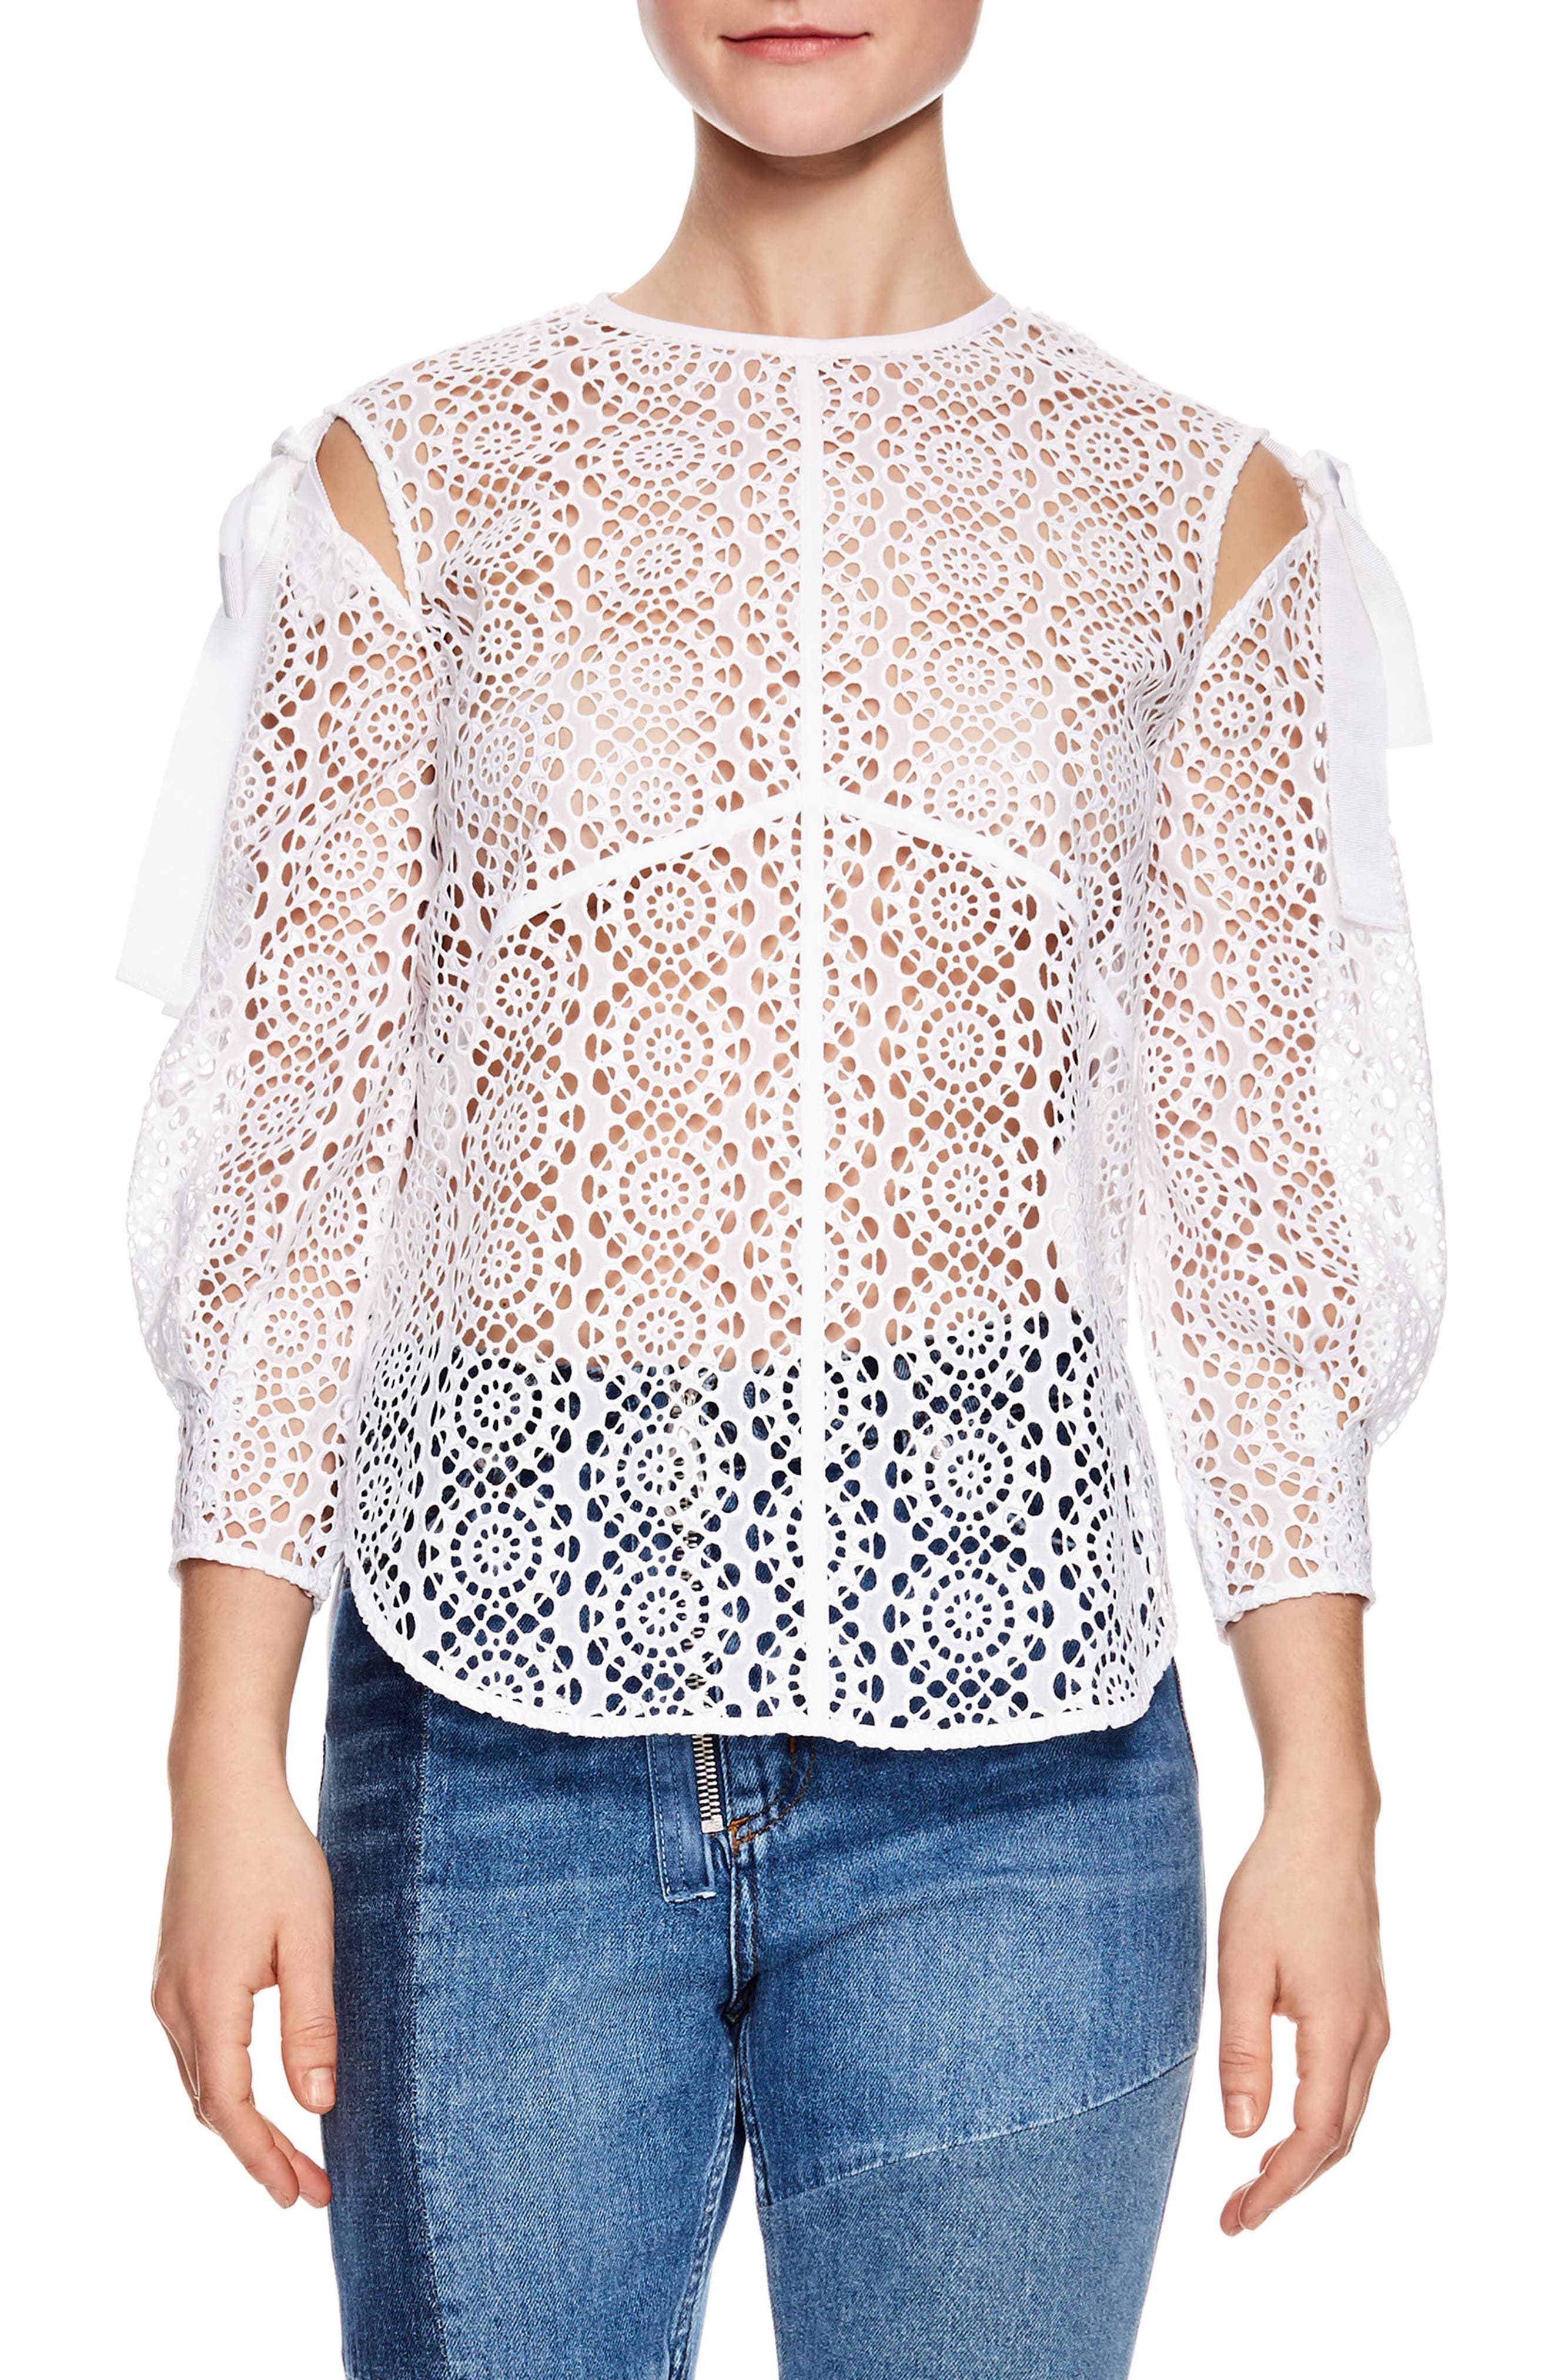 Blanc Sheer Lace Top,                             Main thumbnail 1, color,                             White